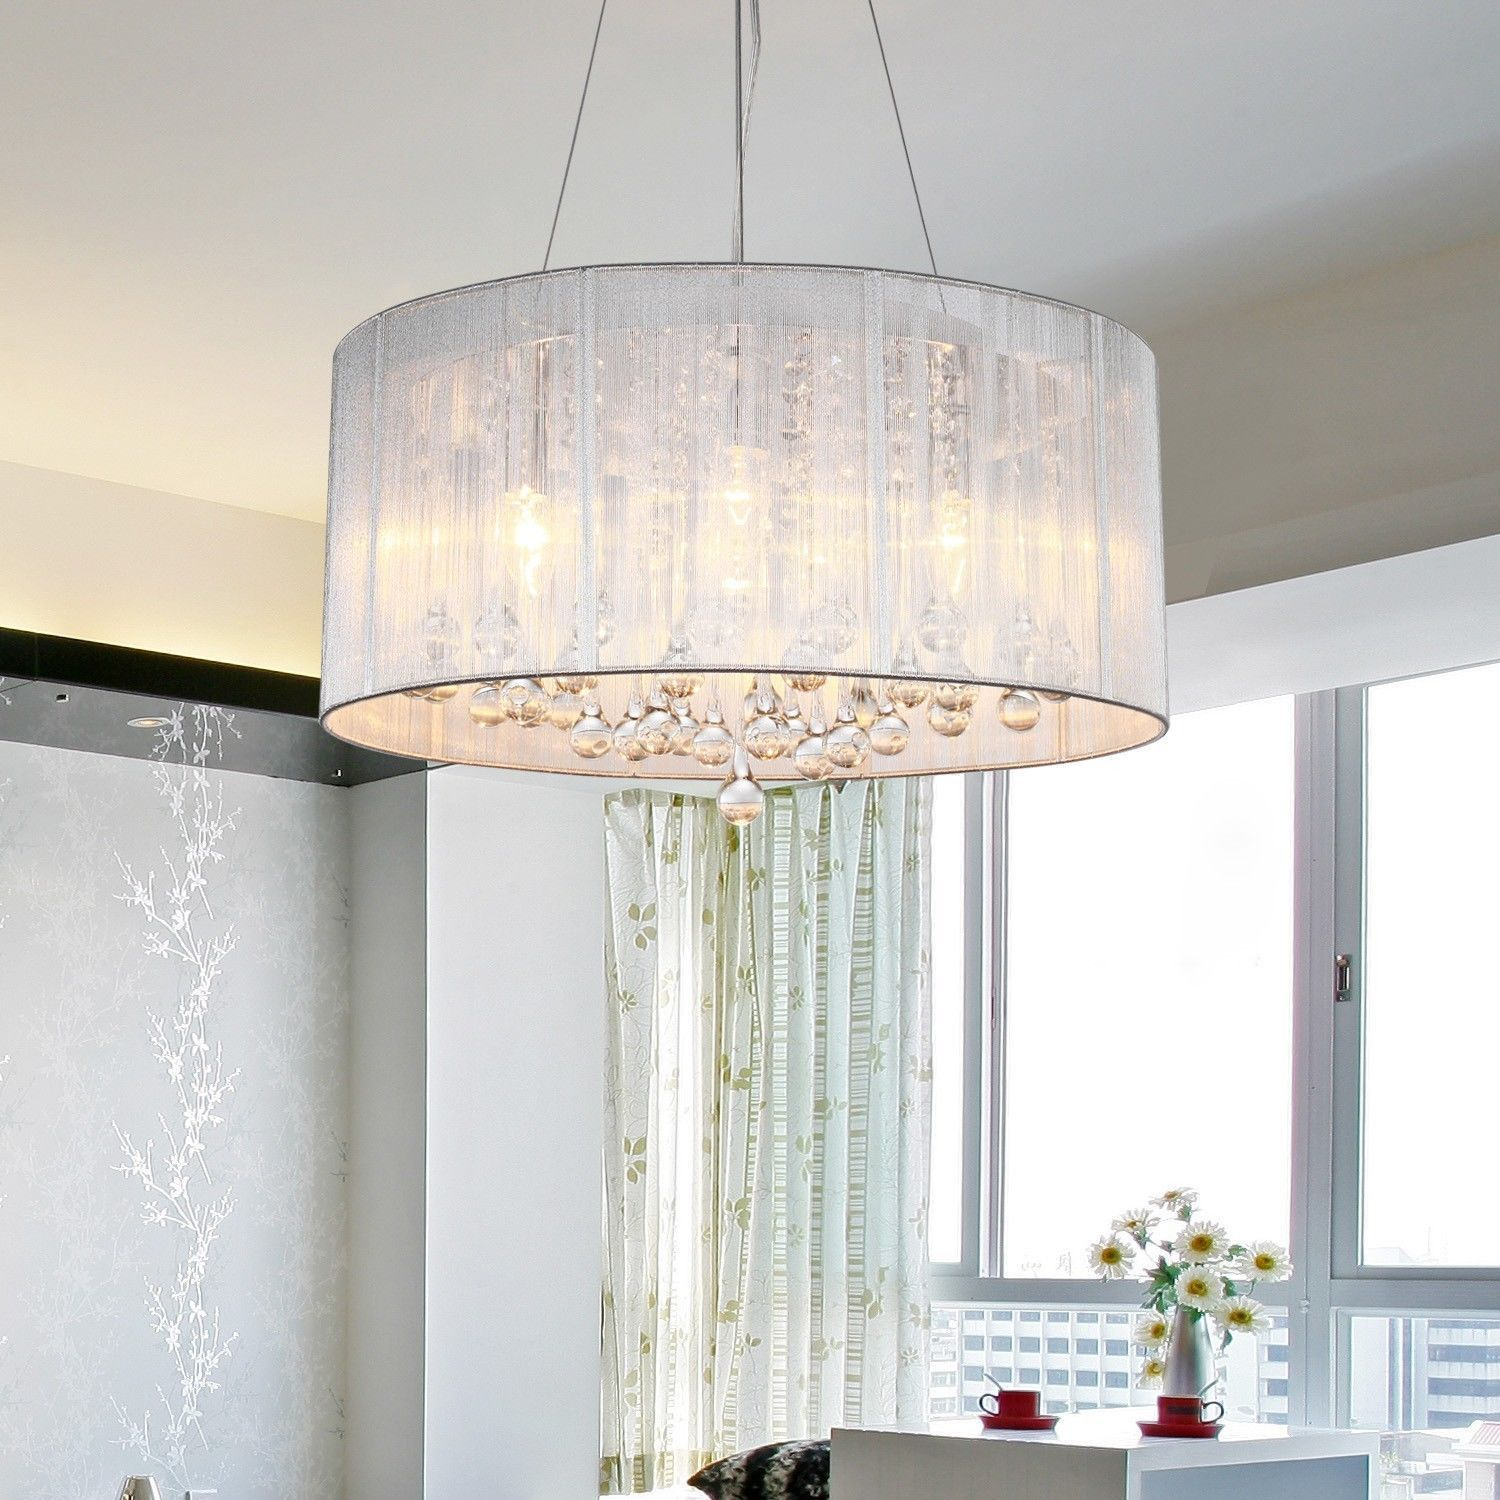 How to choose a chandelier lampshade goodworksfurniture chandelier lamp shades inspiring chandelier light shades plastic casing with dependent crystal ball ojbnkwg aloadofball Image collections